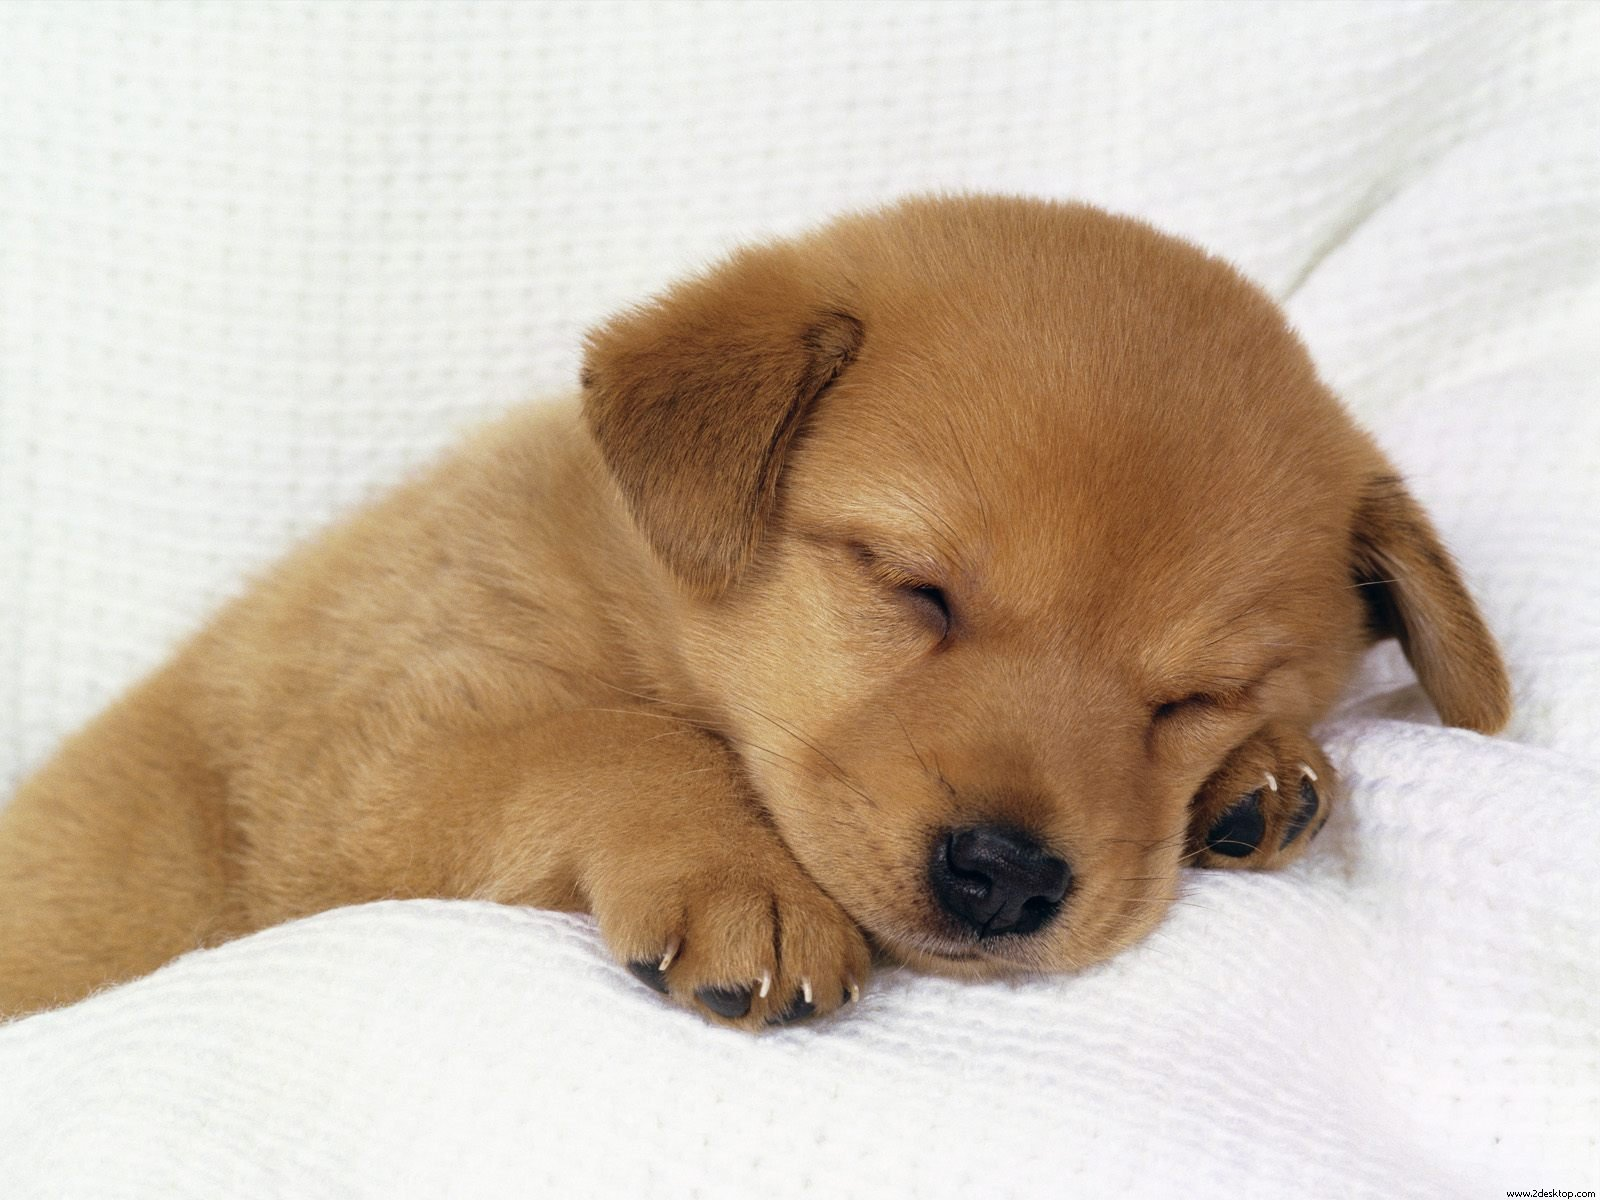 Pictures Of Puppies Sleeping 156.34 Kb